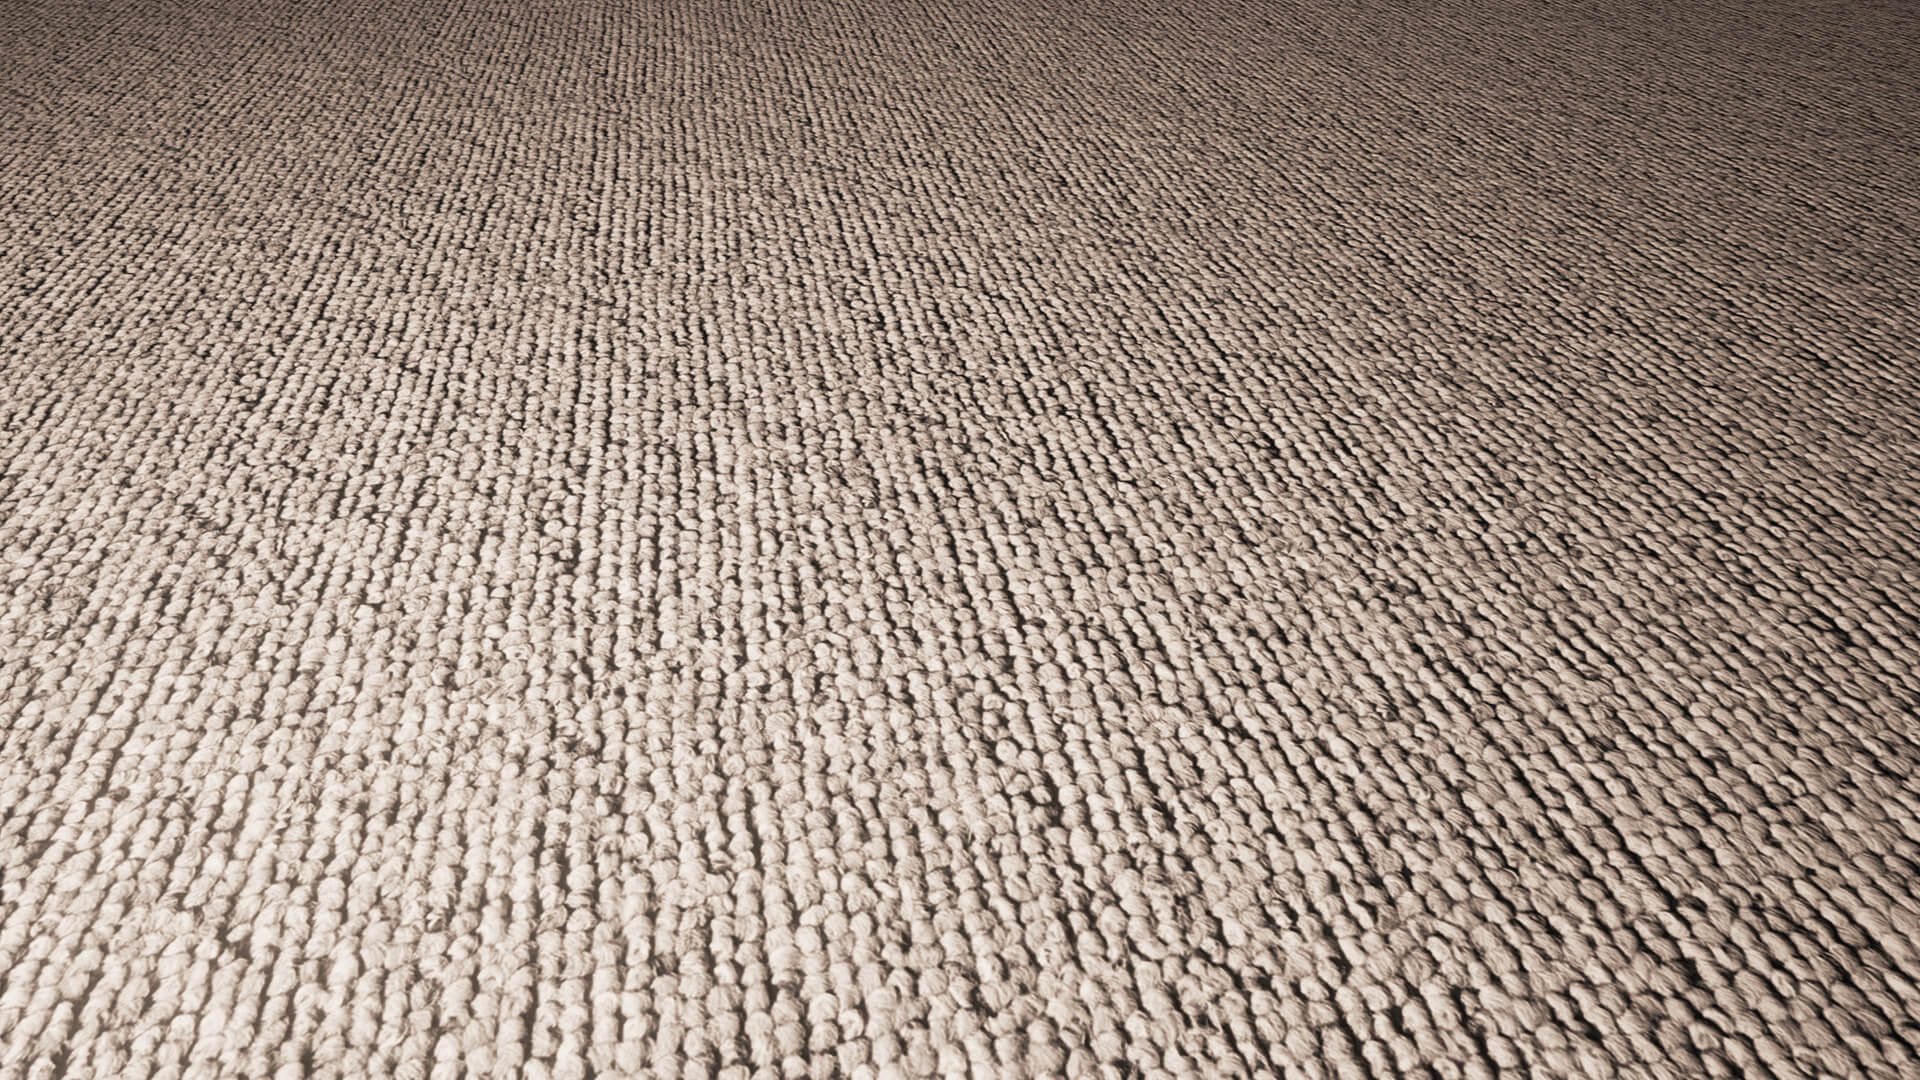 carpet material ue4 carpet vidalondon ForBest Material For Carpet